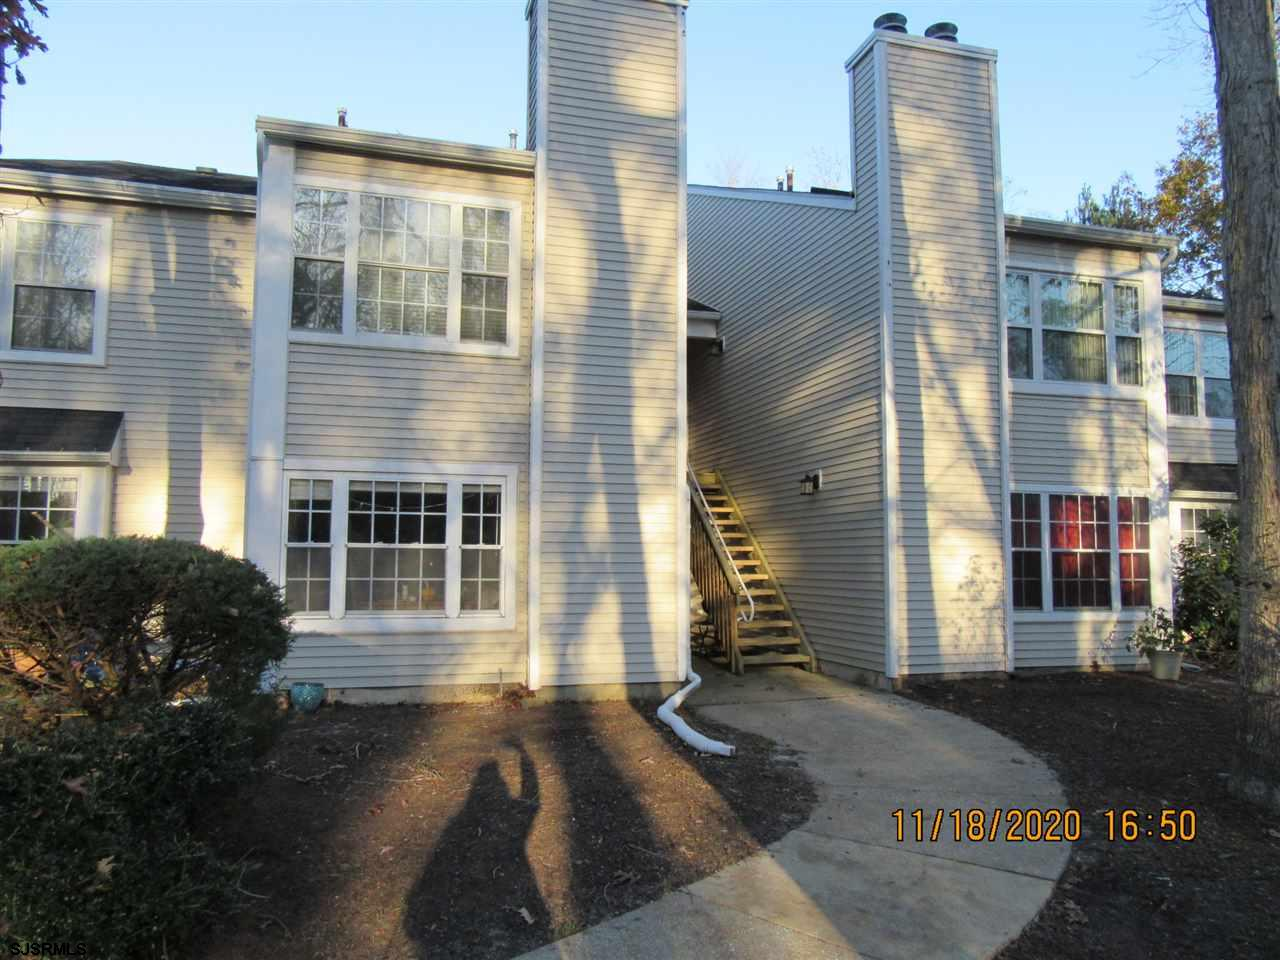 Pheasant Meadow - Located on the 1st floor, this 2 Bedroom, 2 Bath condo has new gas heat and centra